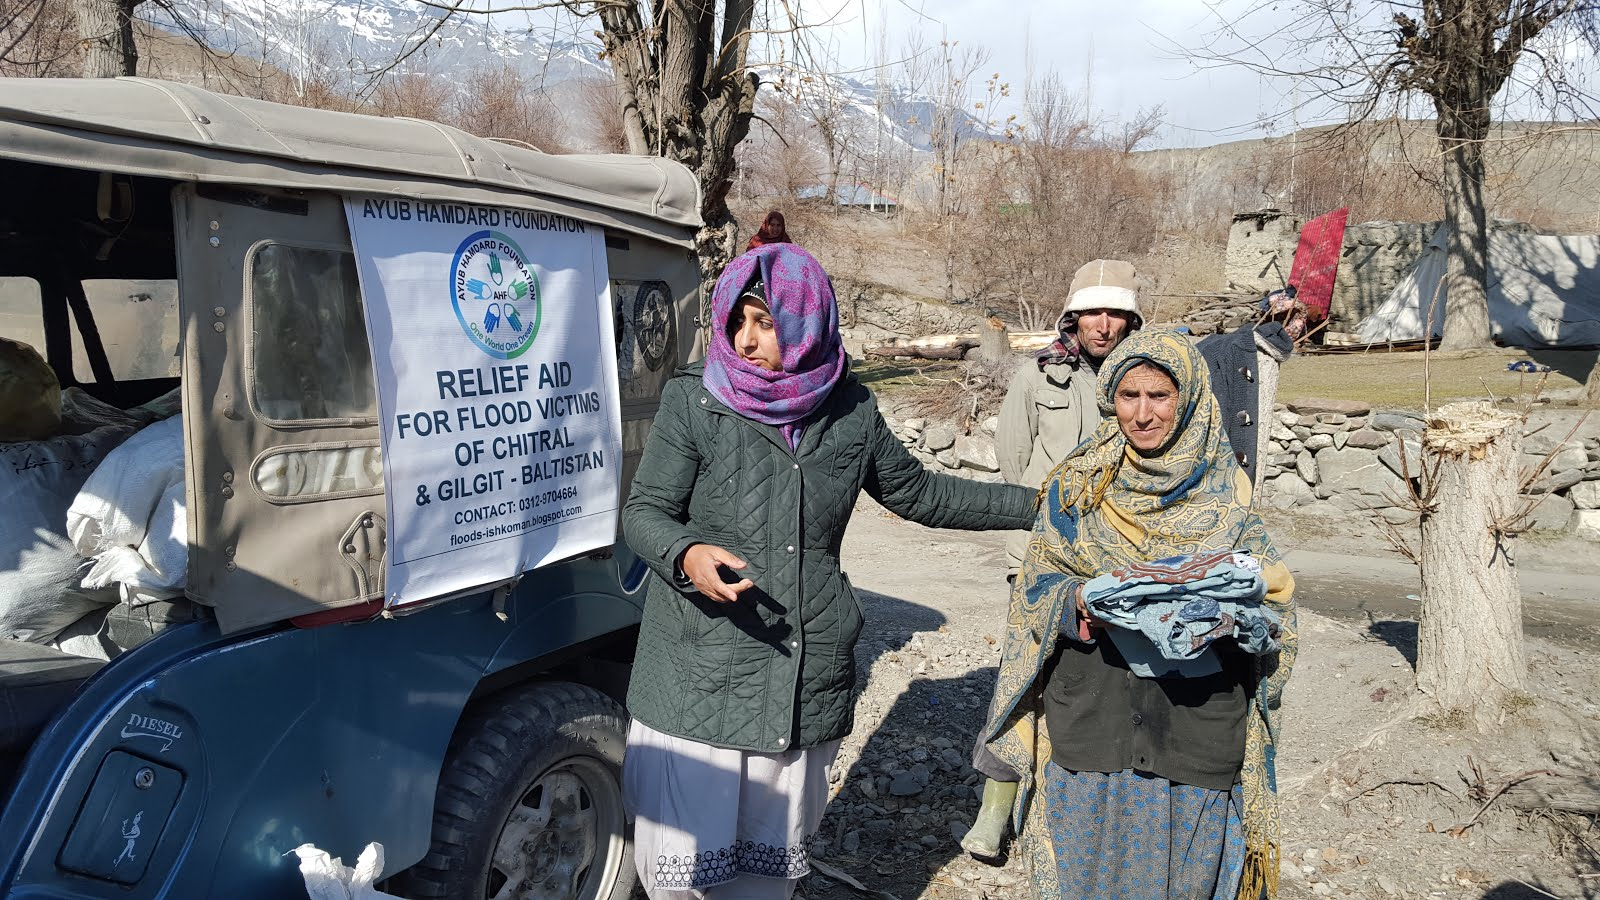 AYUB HAMDARD FOUNDATION RELIEF AID FOR CHITRAL FLOOD AND EARTHQUAKE VICTIMS DEC 2015